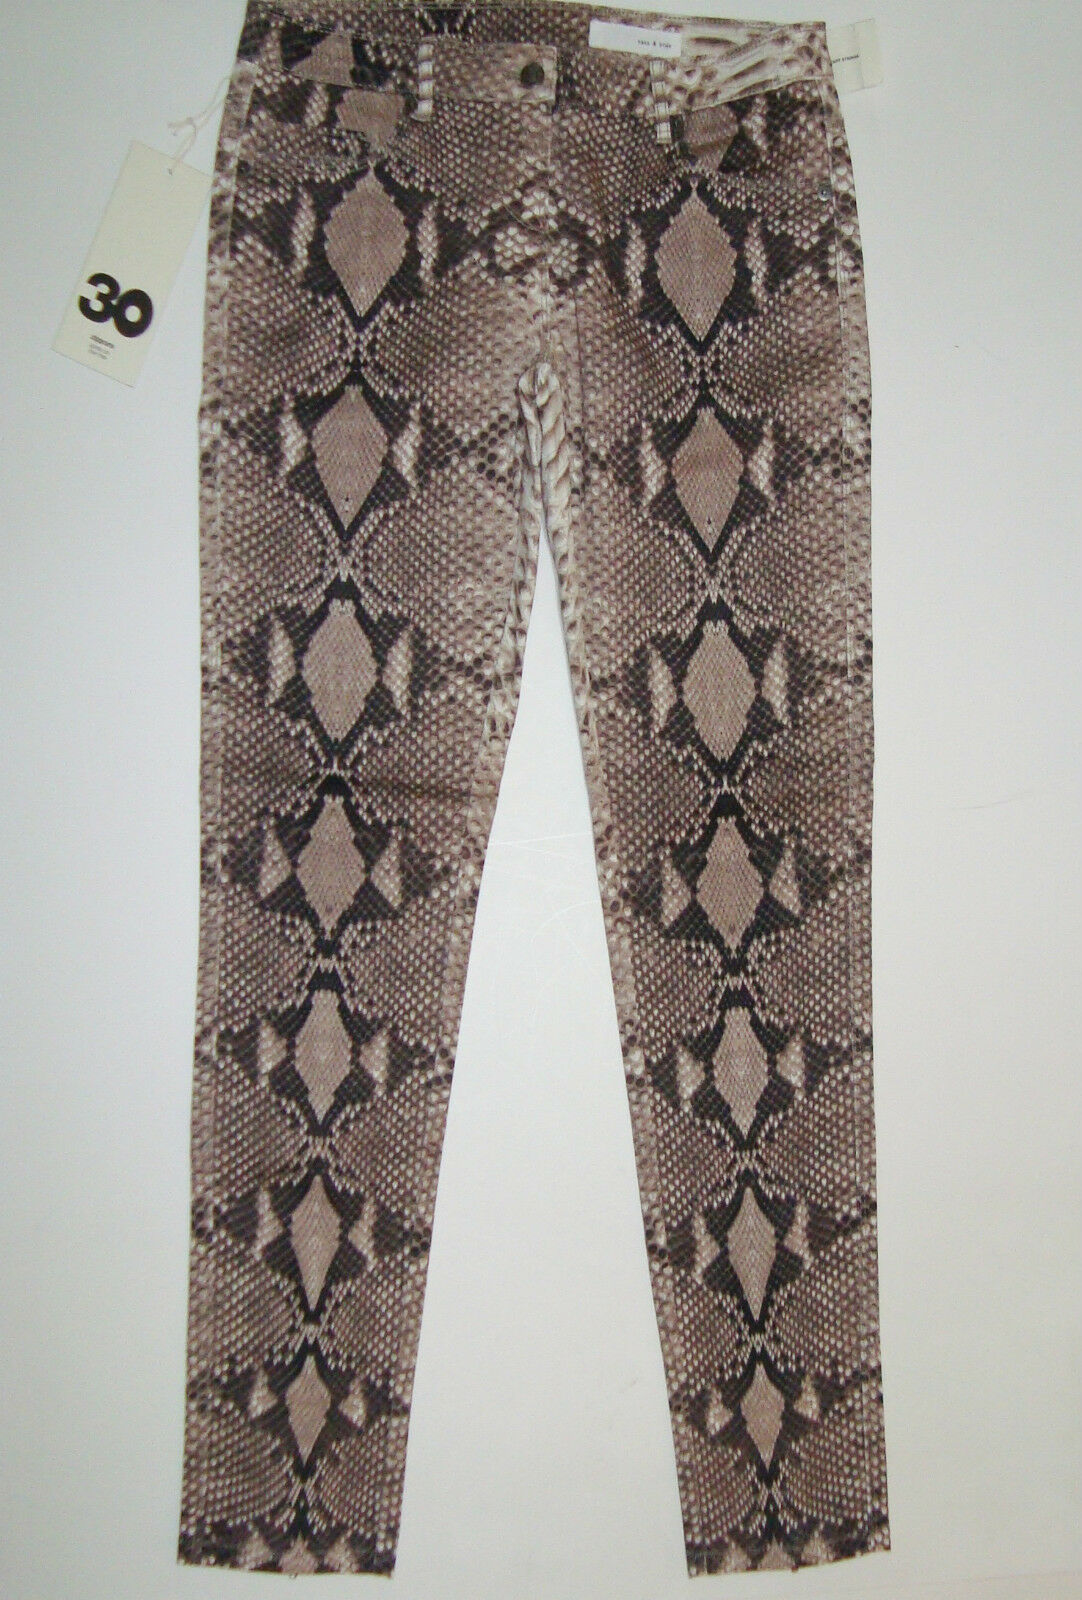 42d6307d61d5 BNWT SASS&BIDE REPTILE PRINT SKINNY JEANS - 30 THE LONGEST NIGHT ZIPPORA